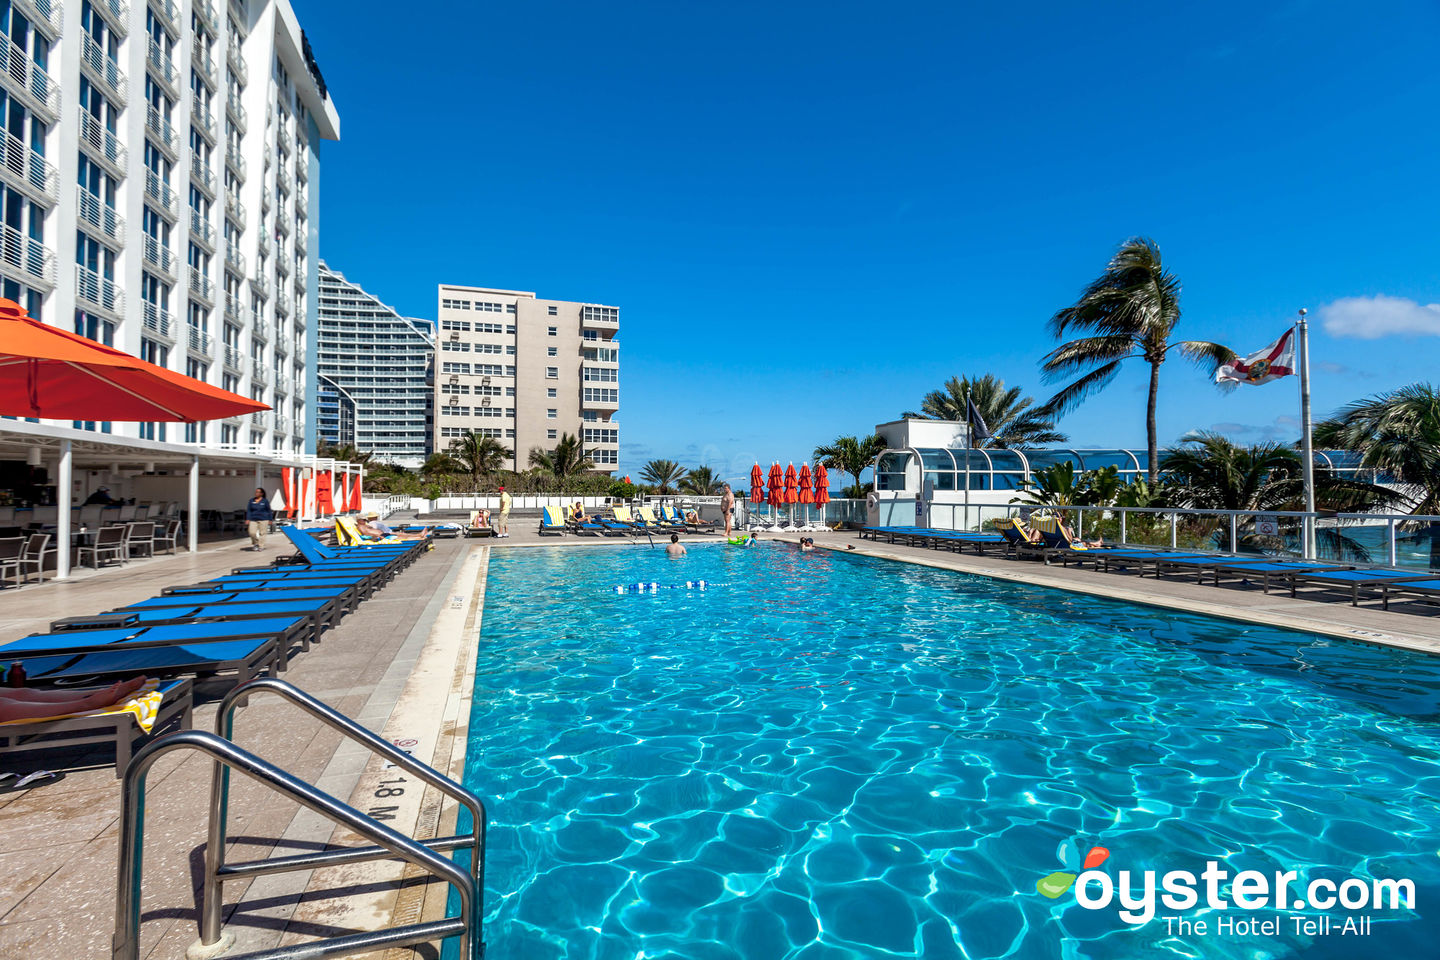 The Best KidFriendly Hotels in Fort Lauderdale updated